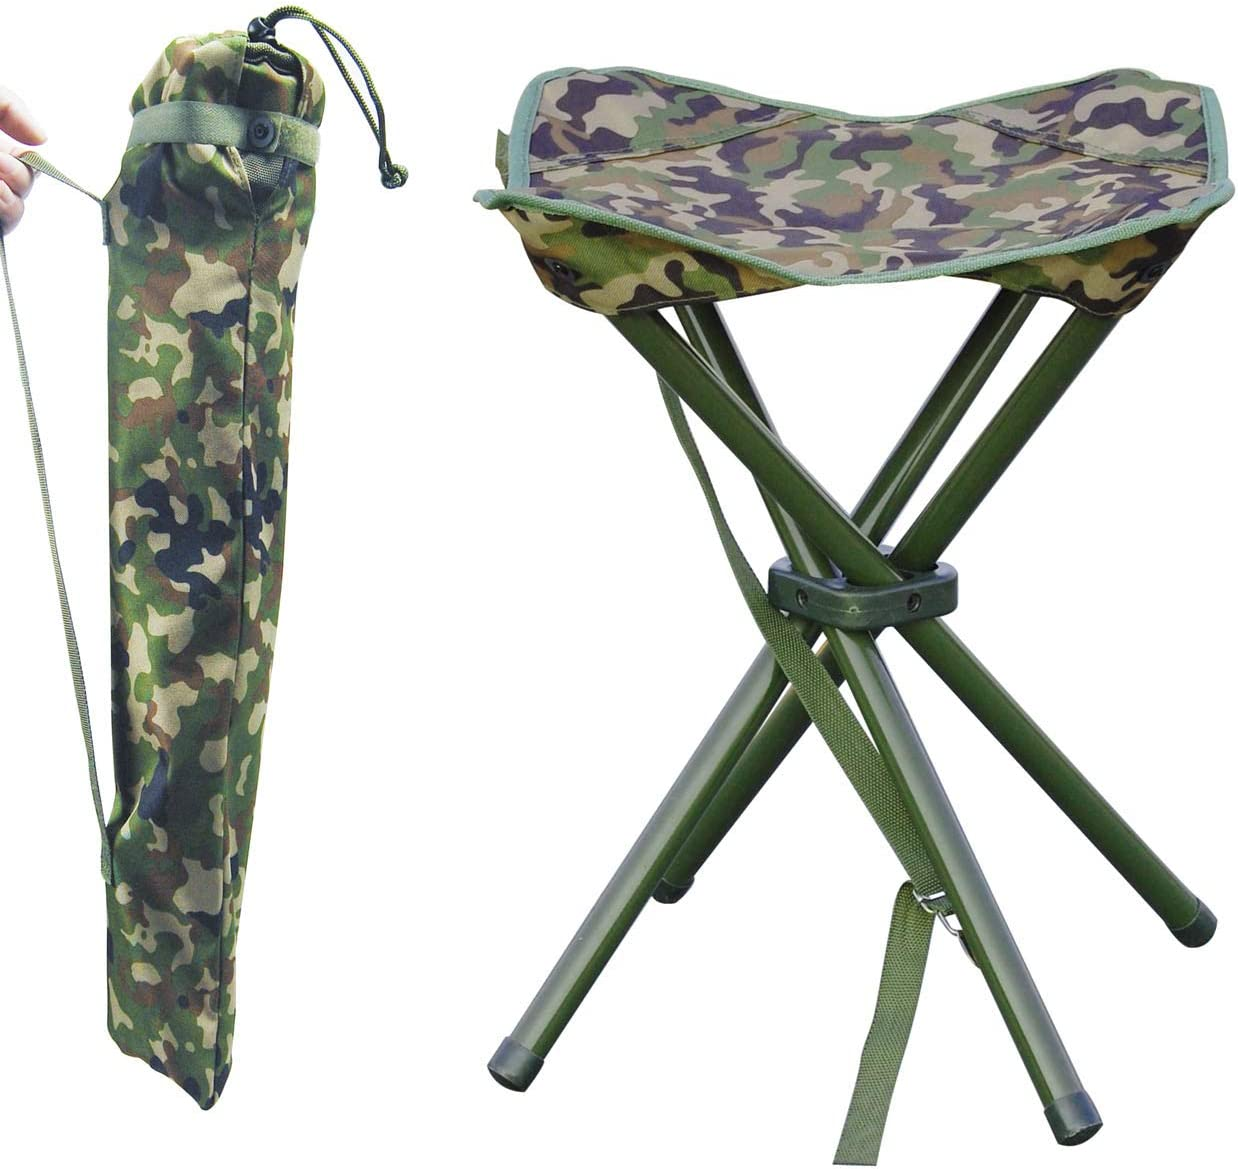 AGOOL Outdoor Stool Portable Folding Stool Slack Chair Lightweight Stool Heavy Duty for Camping Mountaineering Hiking Travel House-Using Recreation